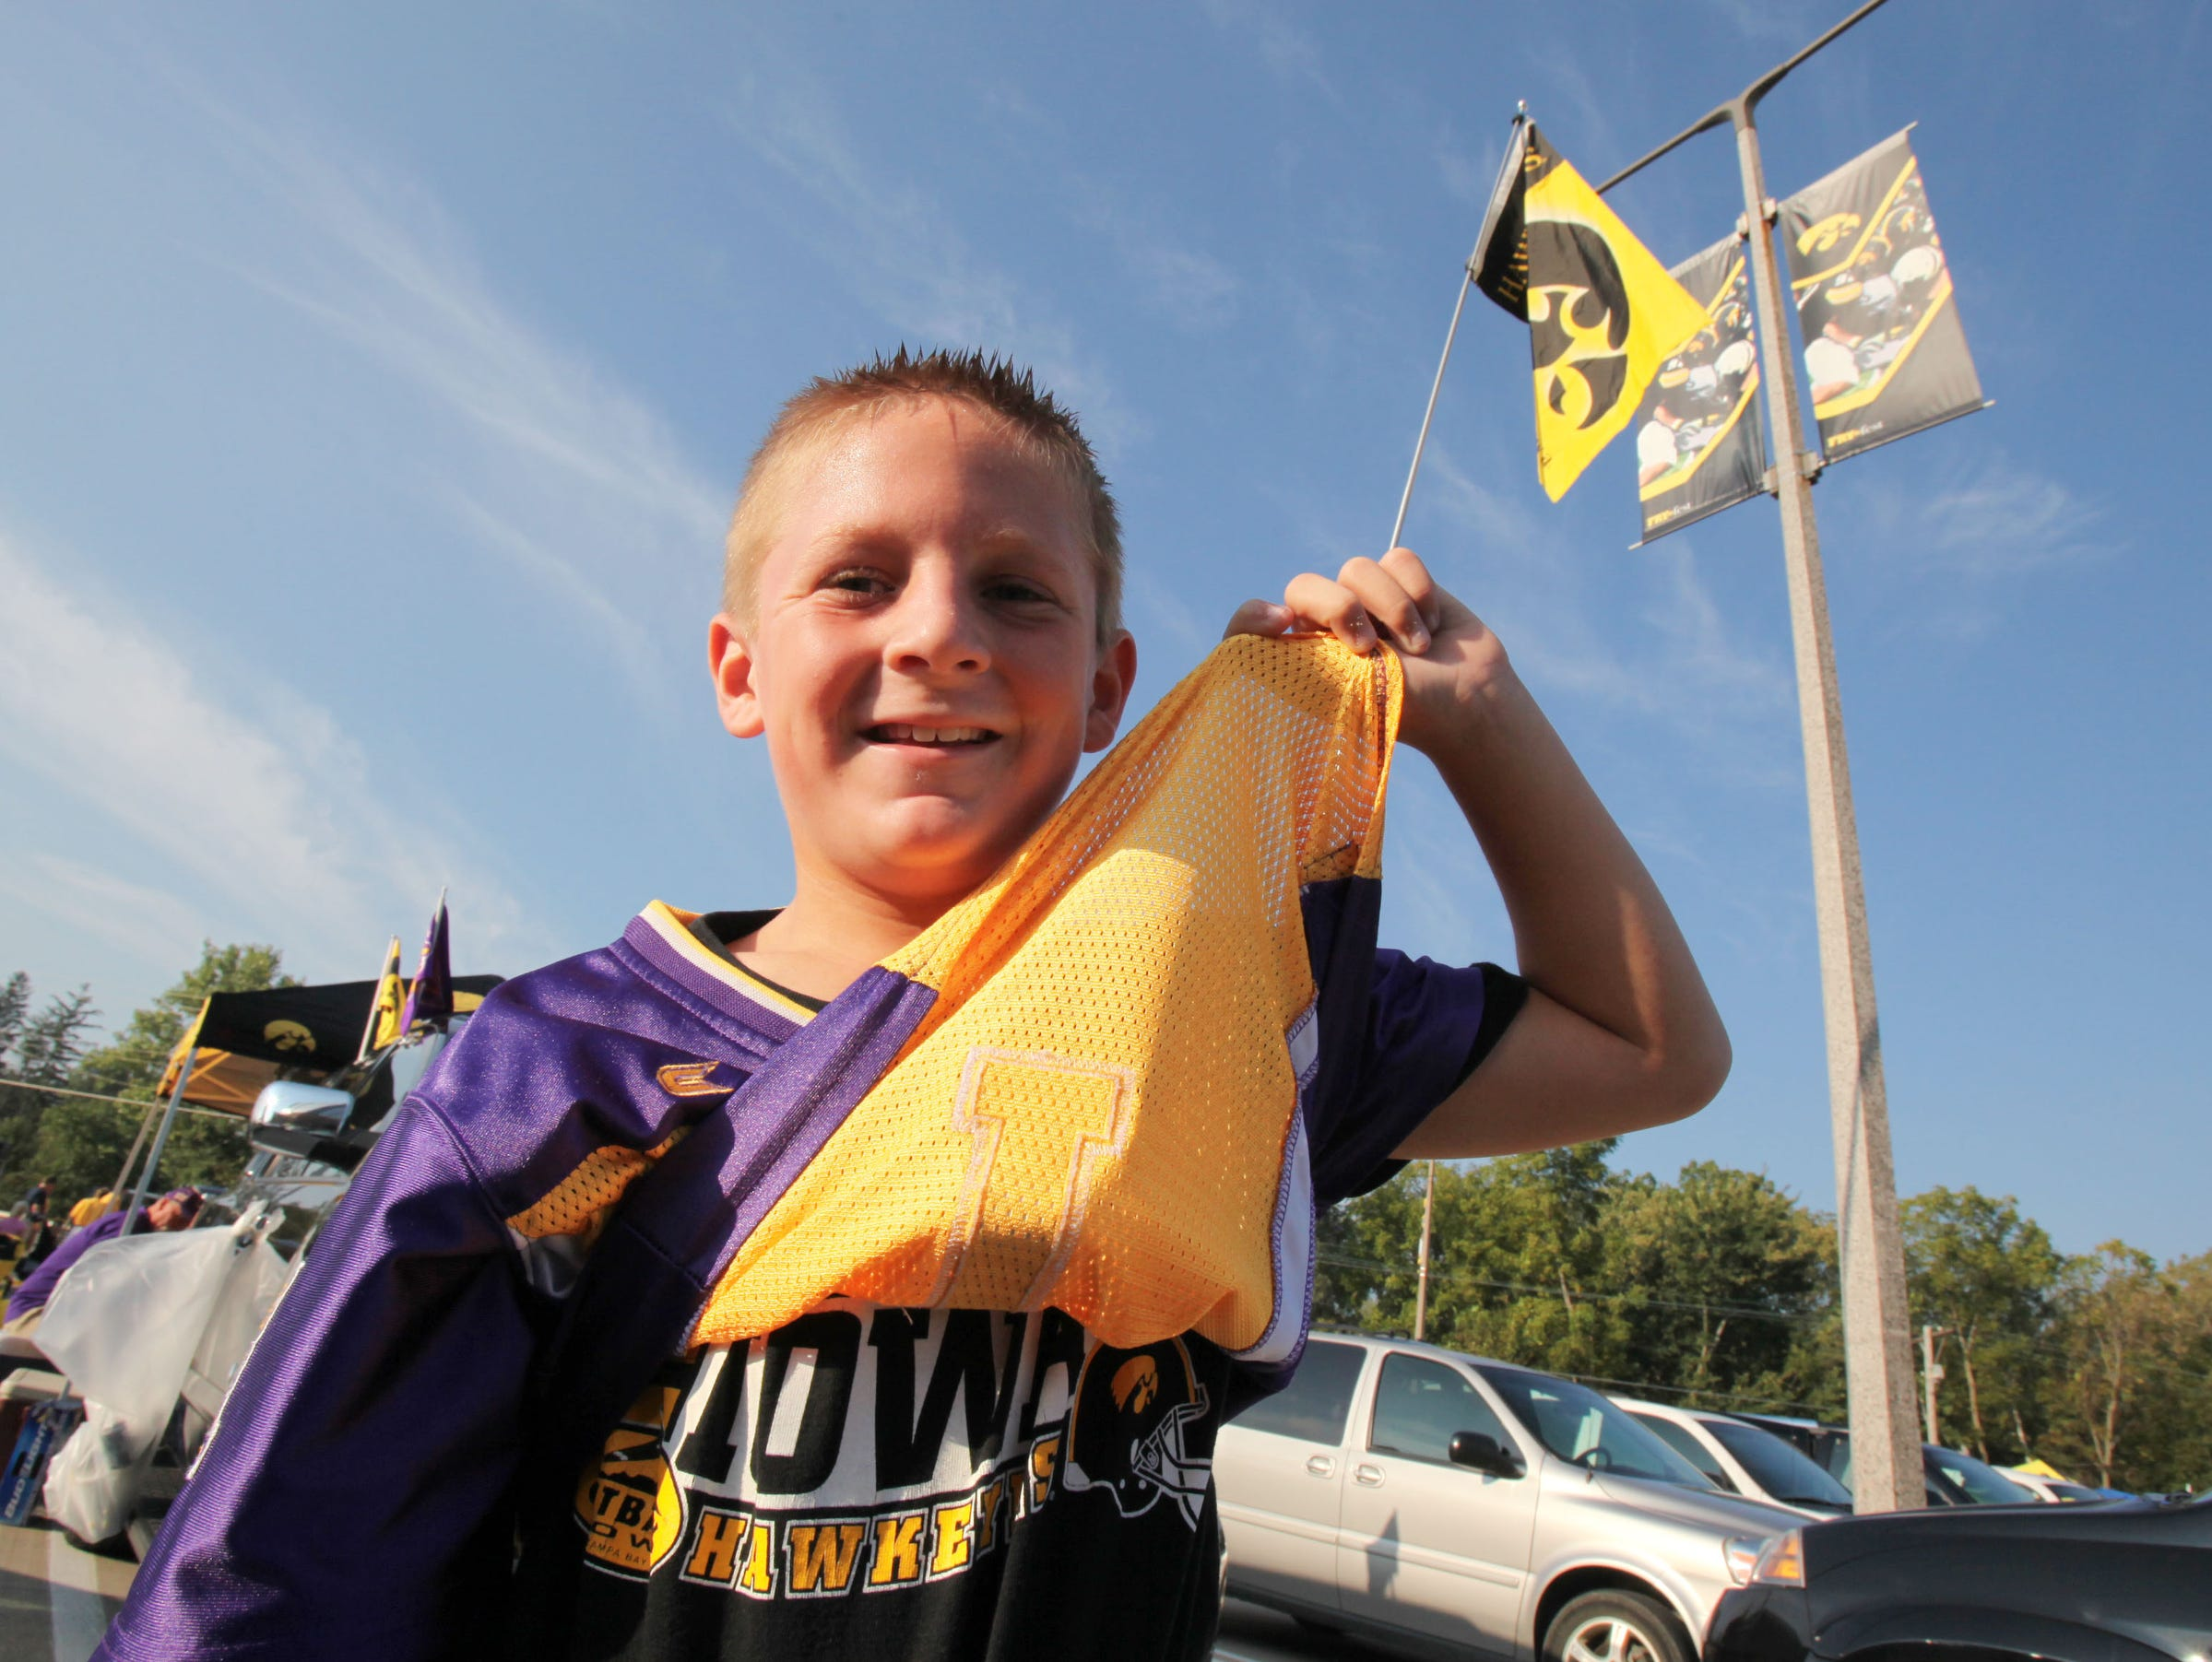 Brock Studer, 9, of Johnston shows off both Panther and Hawkeye colors before Iowa's football season opener against Northern Iowa on Sept. 5, 2009 in Iowa City.